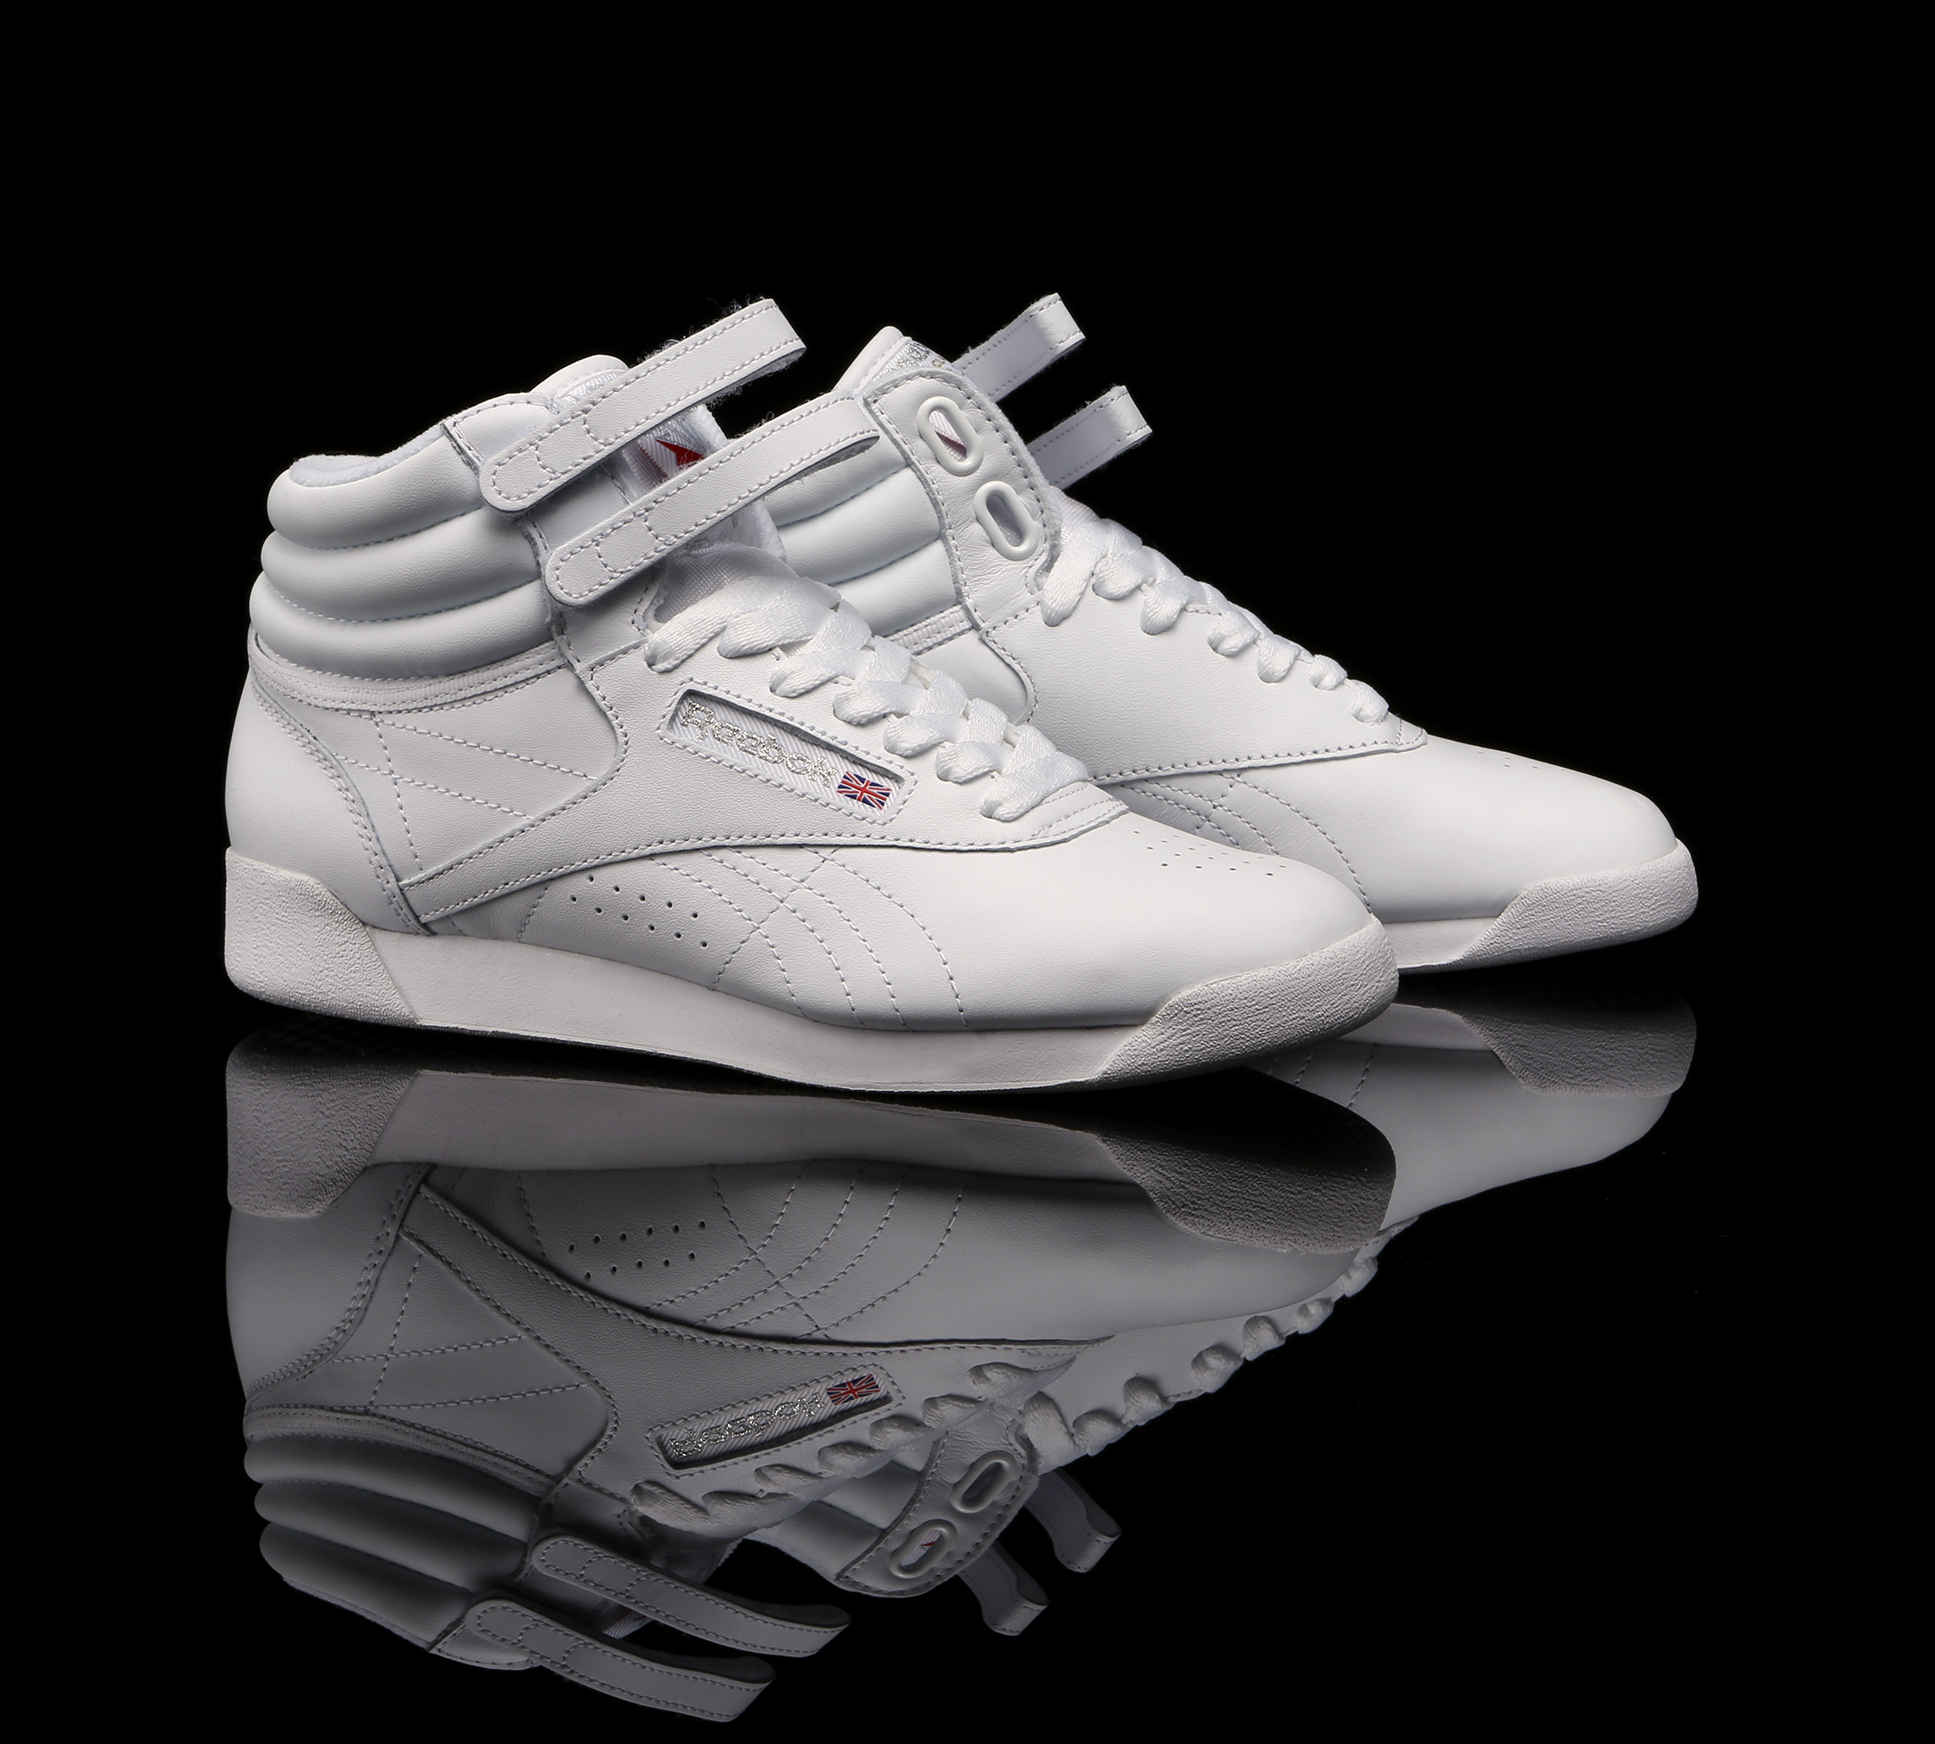 Reebok Freestyle - Wikipedia a8ea7a61c